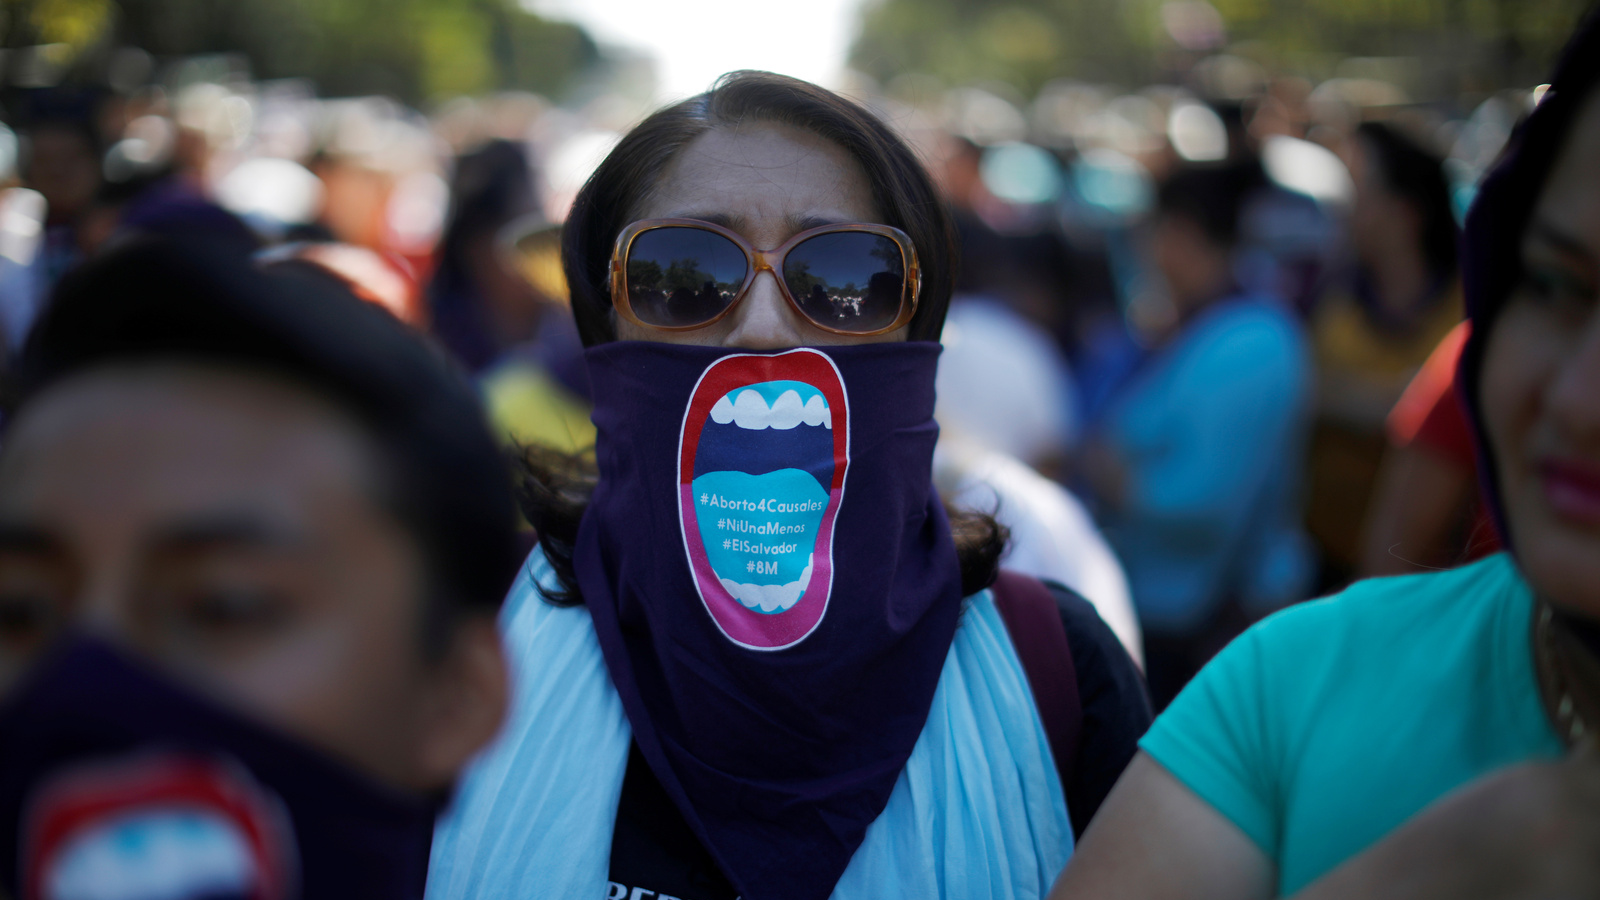 Activists participate in a march to call for an end to violence against women during International Women's Day in San Salvador, El Salvador, March 8, 2018.